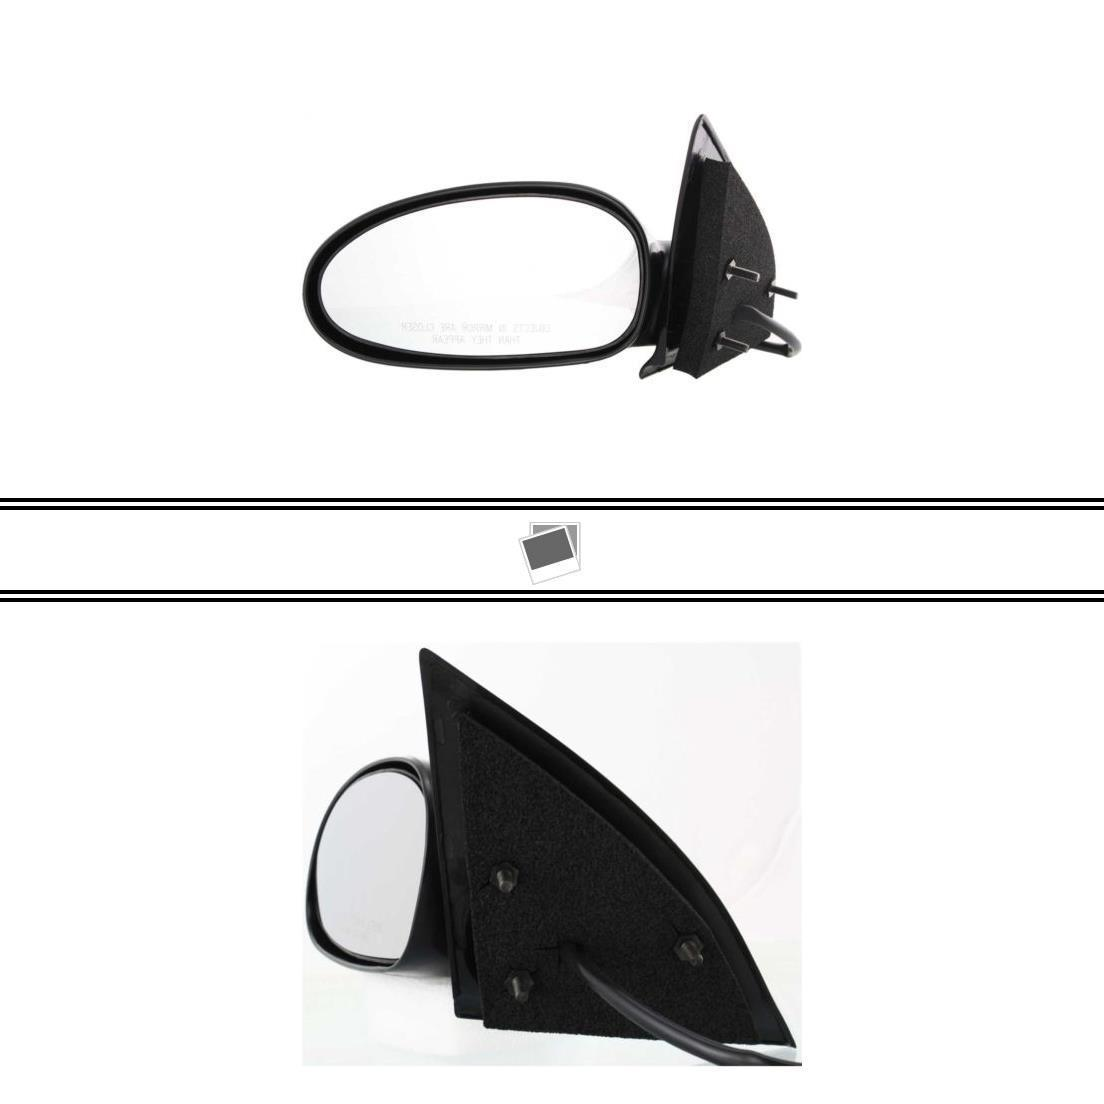 00 01 02 03 04 05 Saturn L-Series Set of Side View Power Mirrors Heated